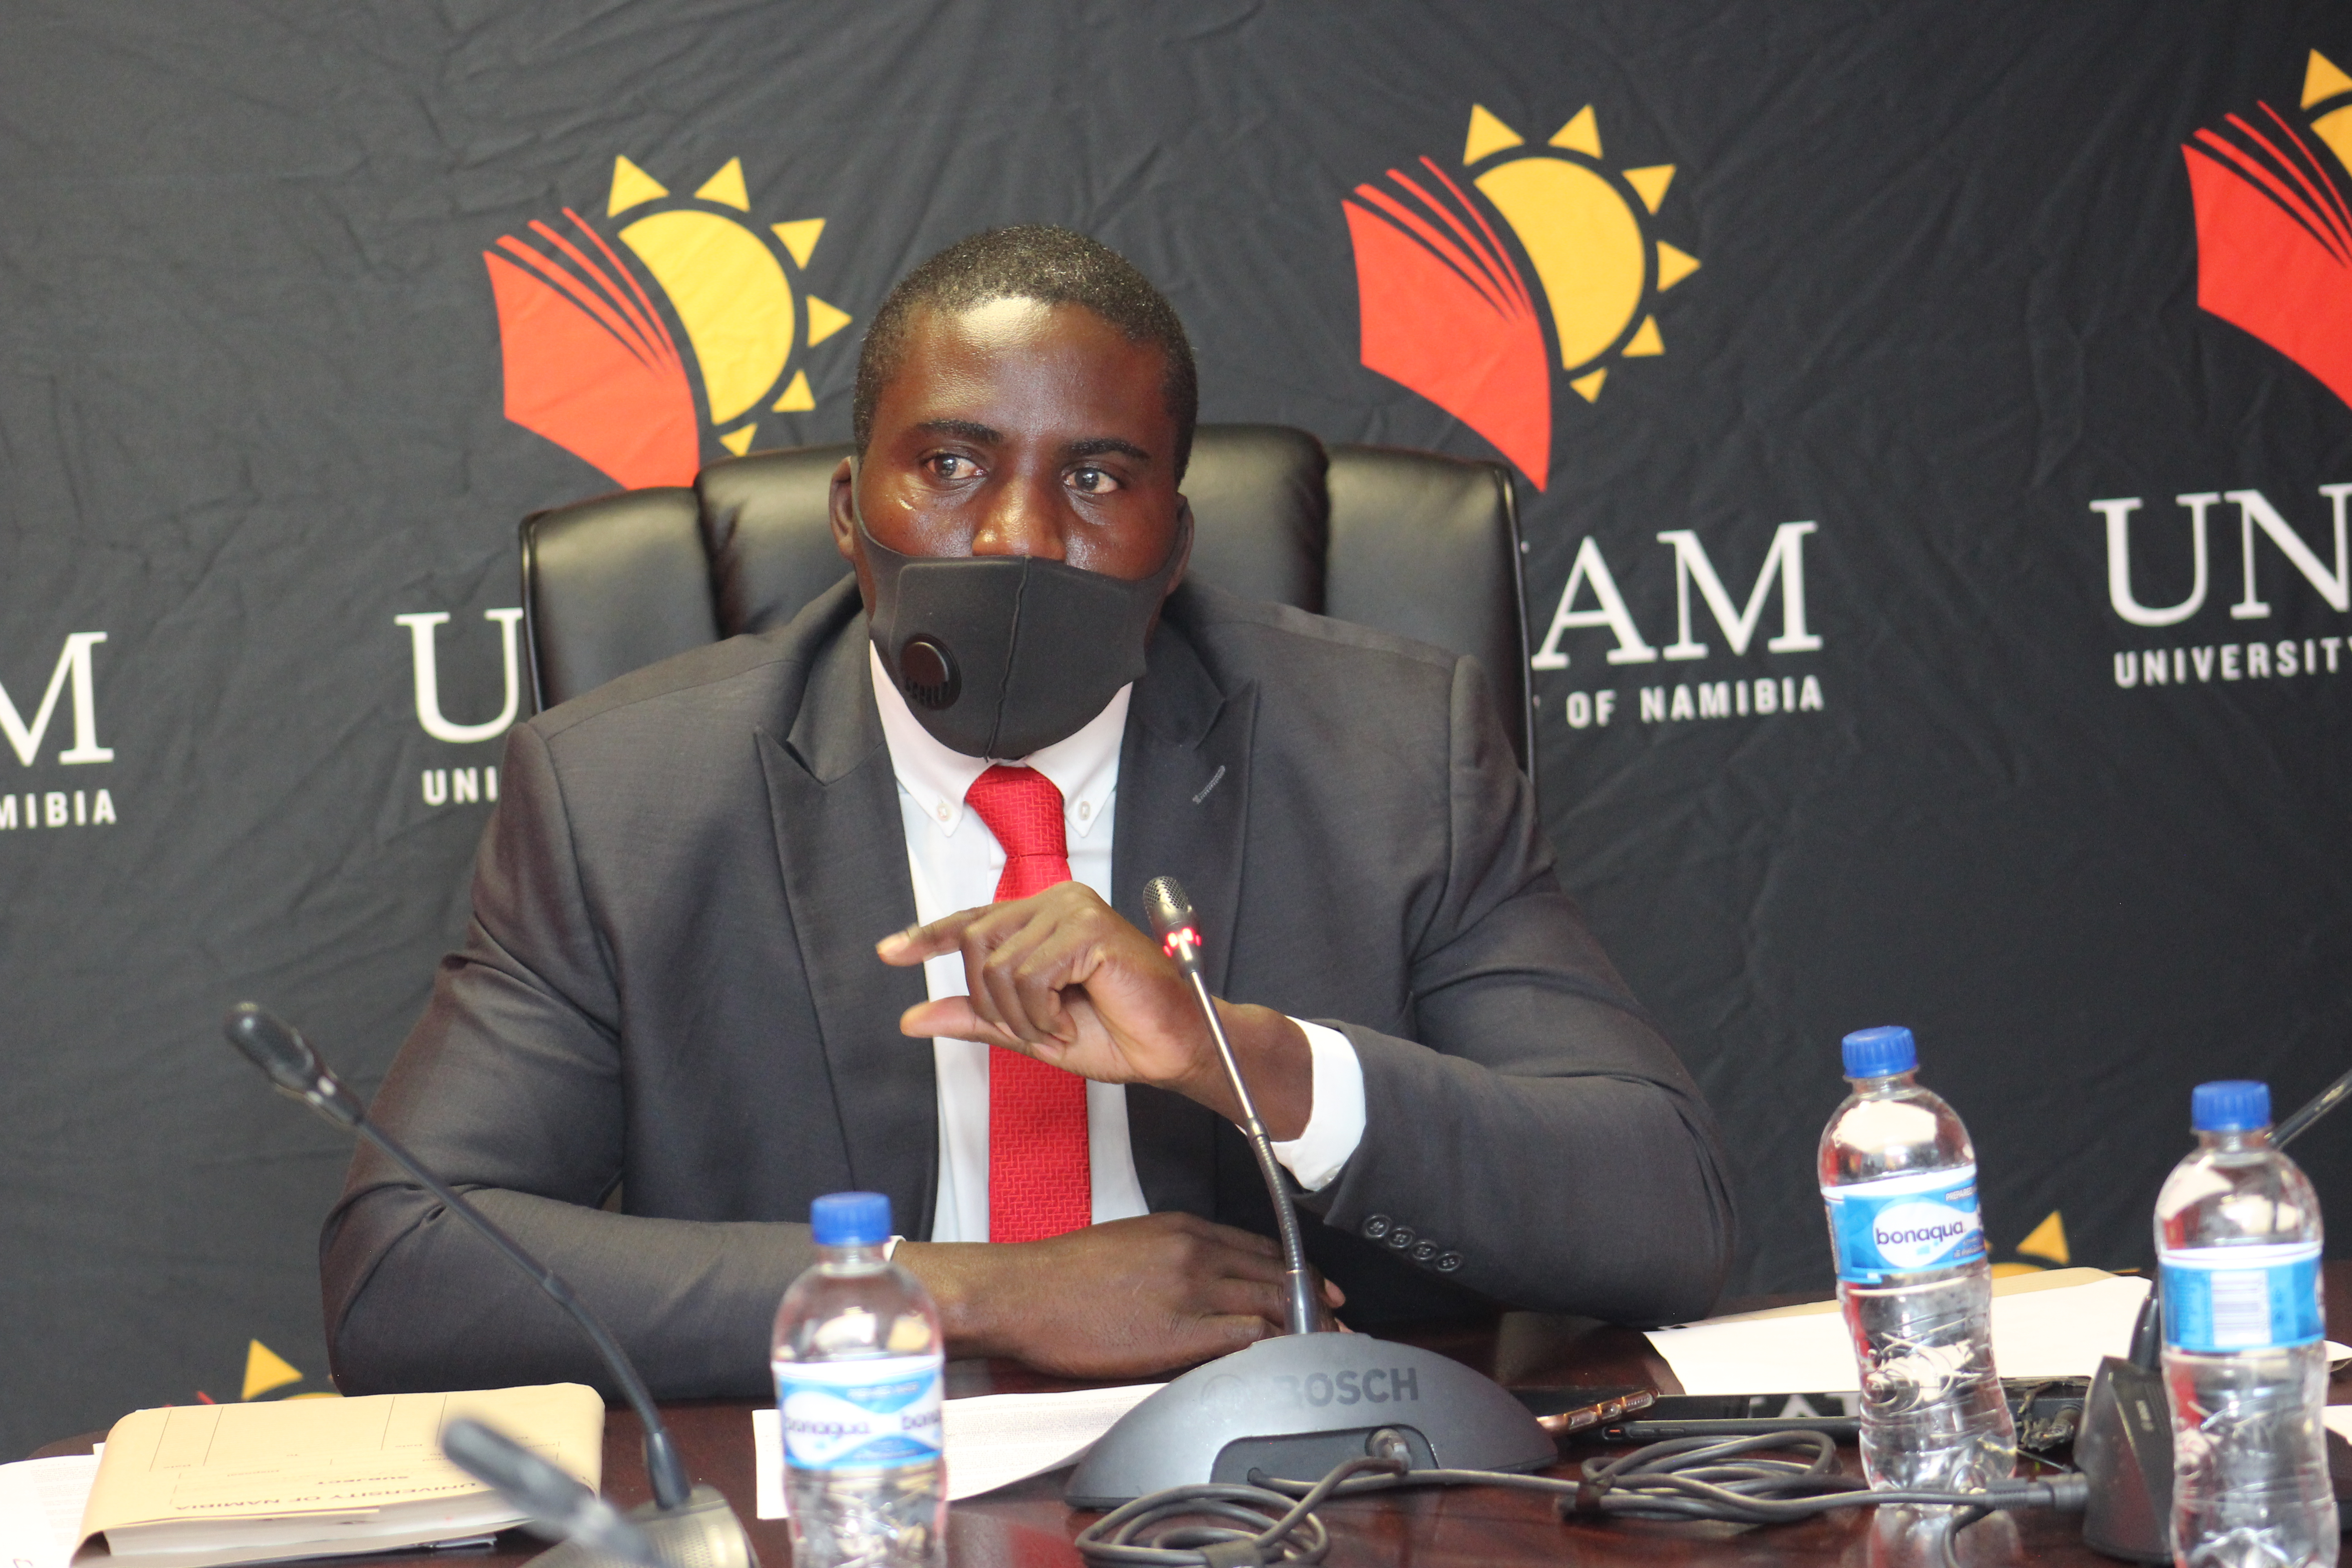 Unam clears confusion over admission